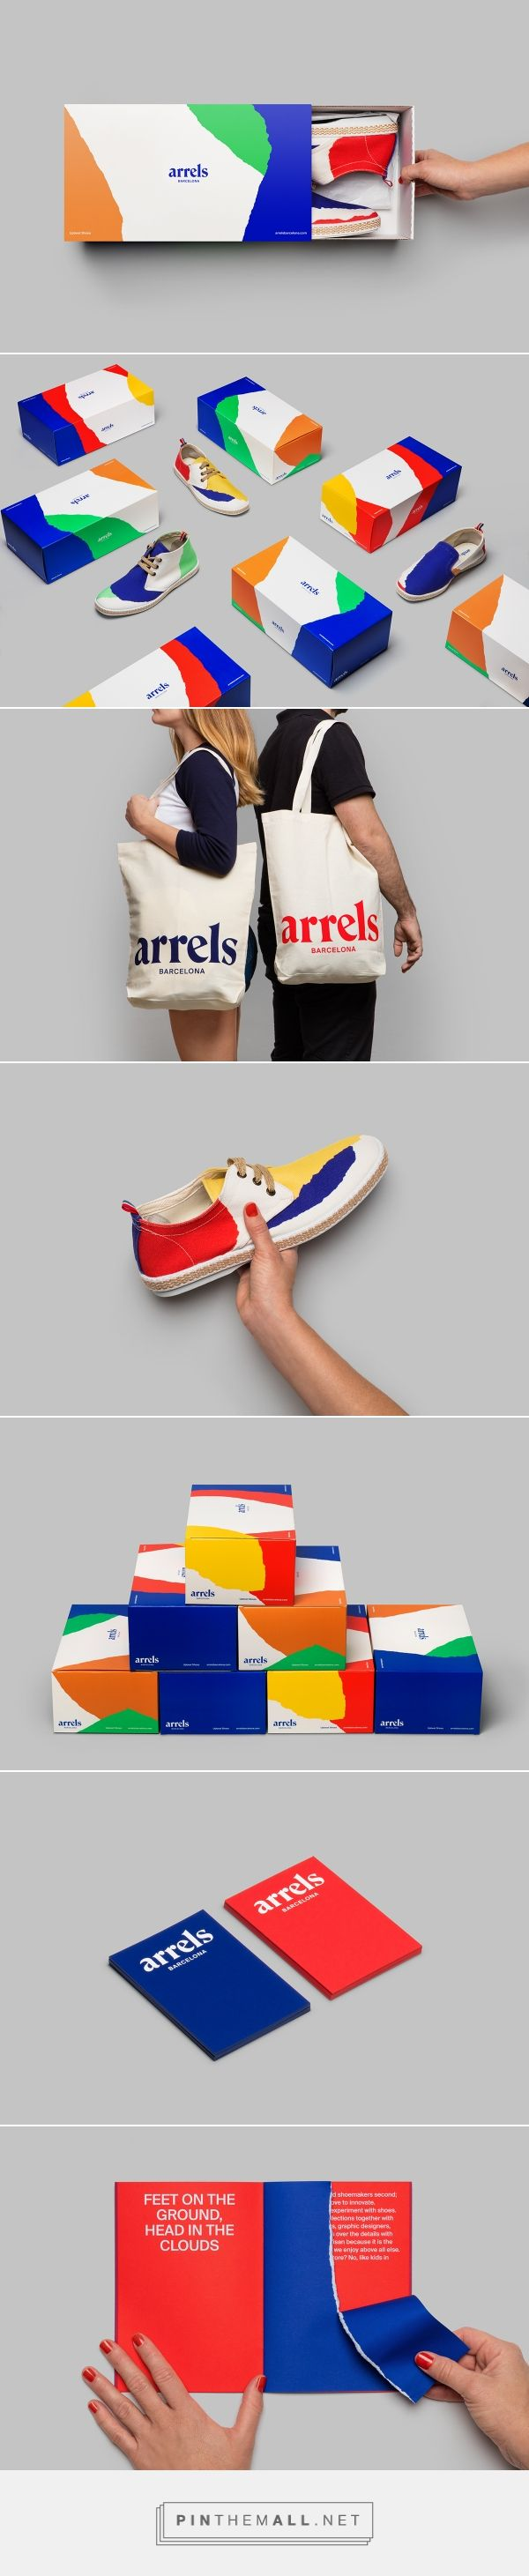 """Arrels packaging on Behance curated by Packaging Diva PD. Arrels, which means """"roots"""" in English, is a Barcelona based footwear brand making shoes for the urban market."""